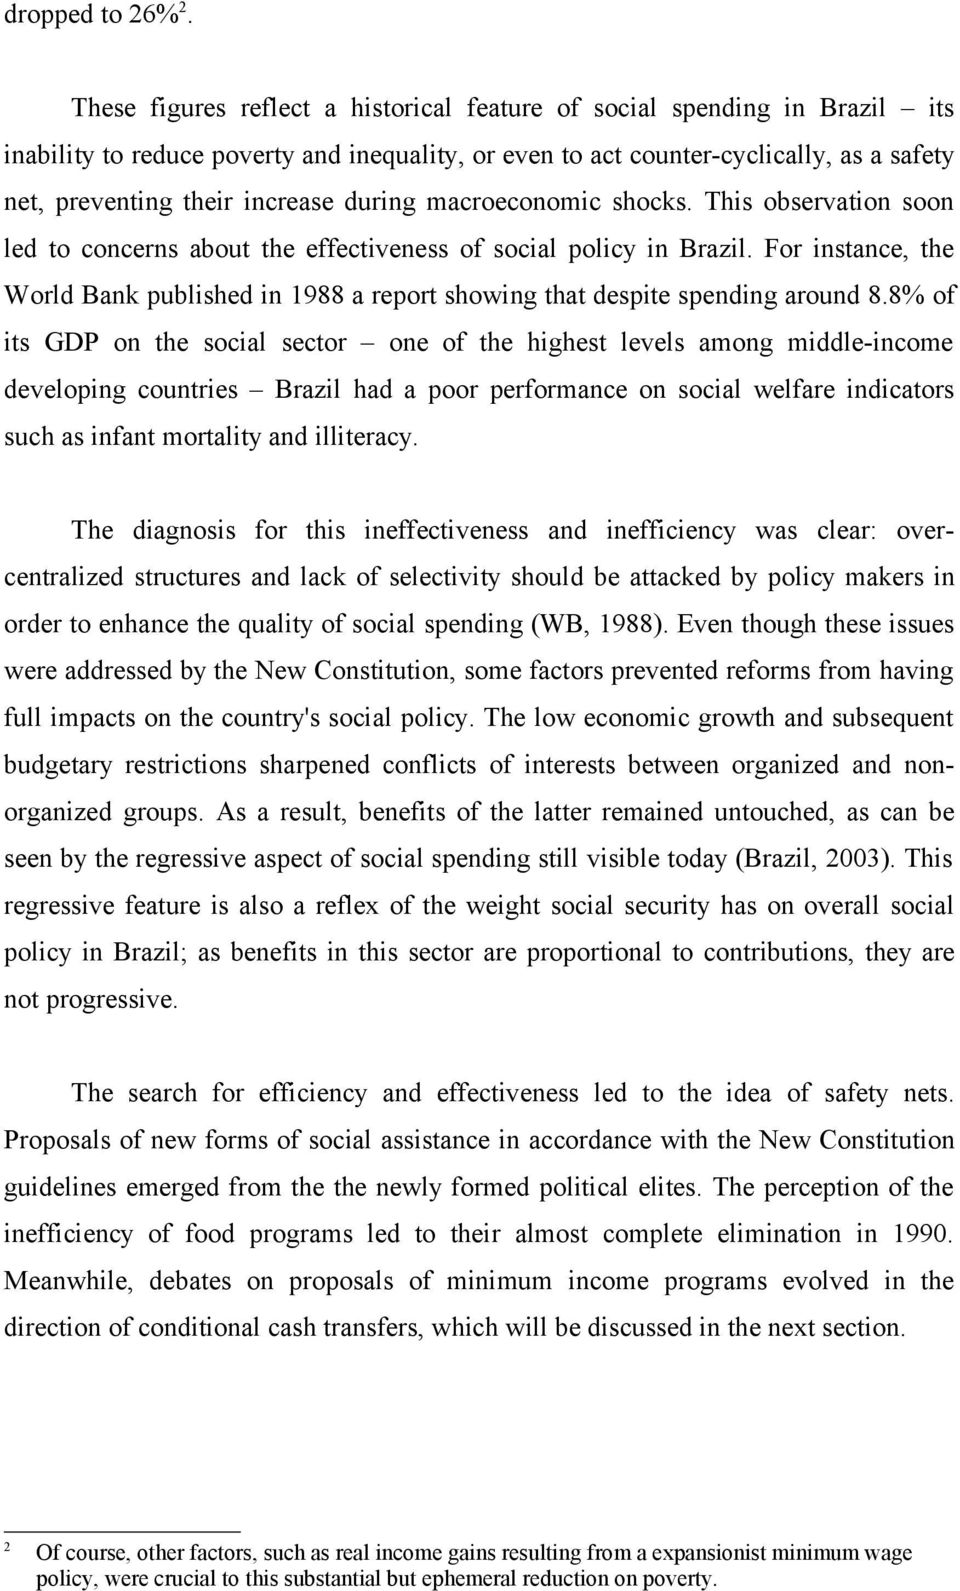 during macroeconomic shocks. This observation soon led to concerns about the effectiveness of social policy in Brazil.